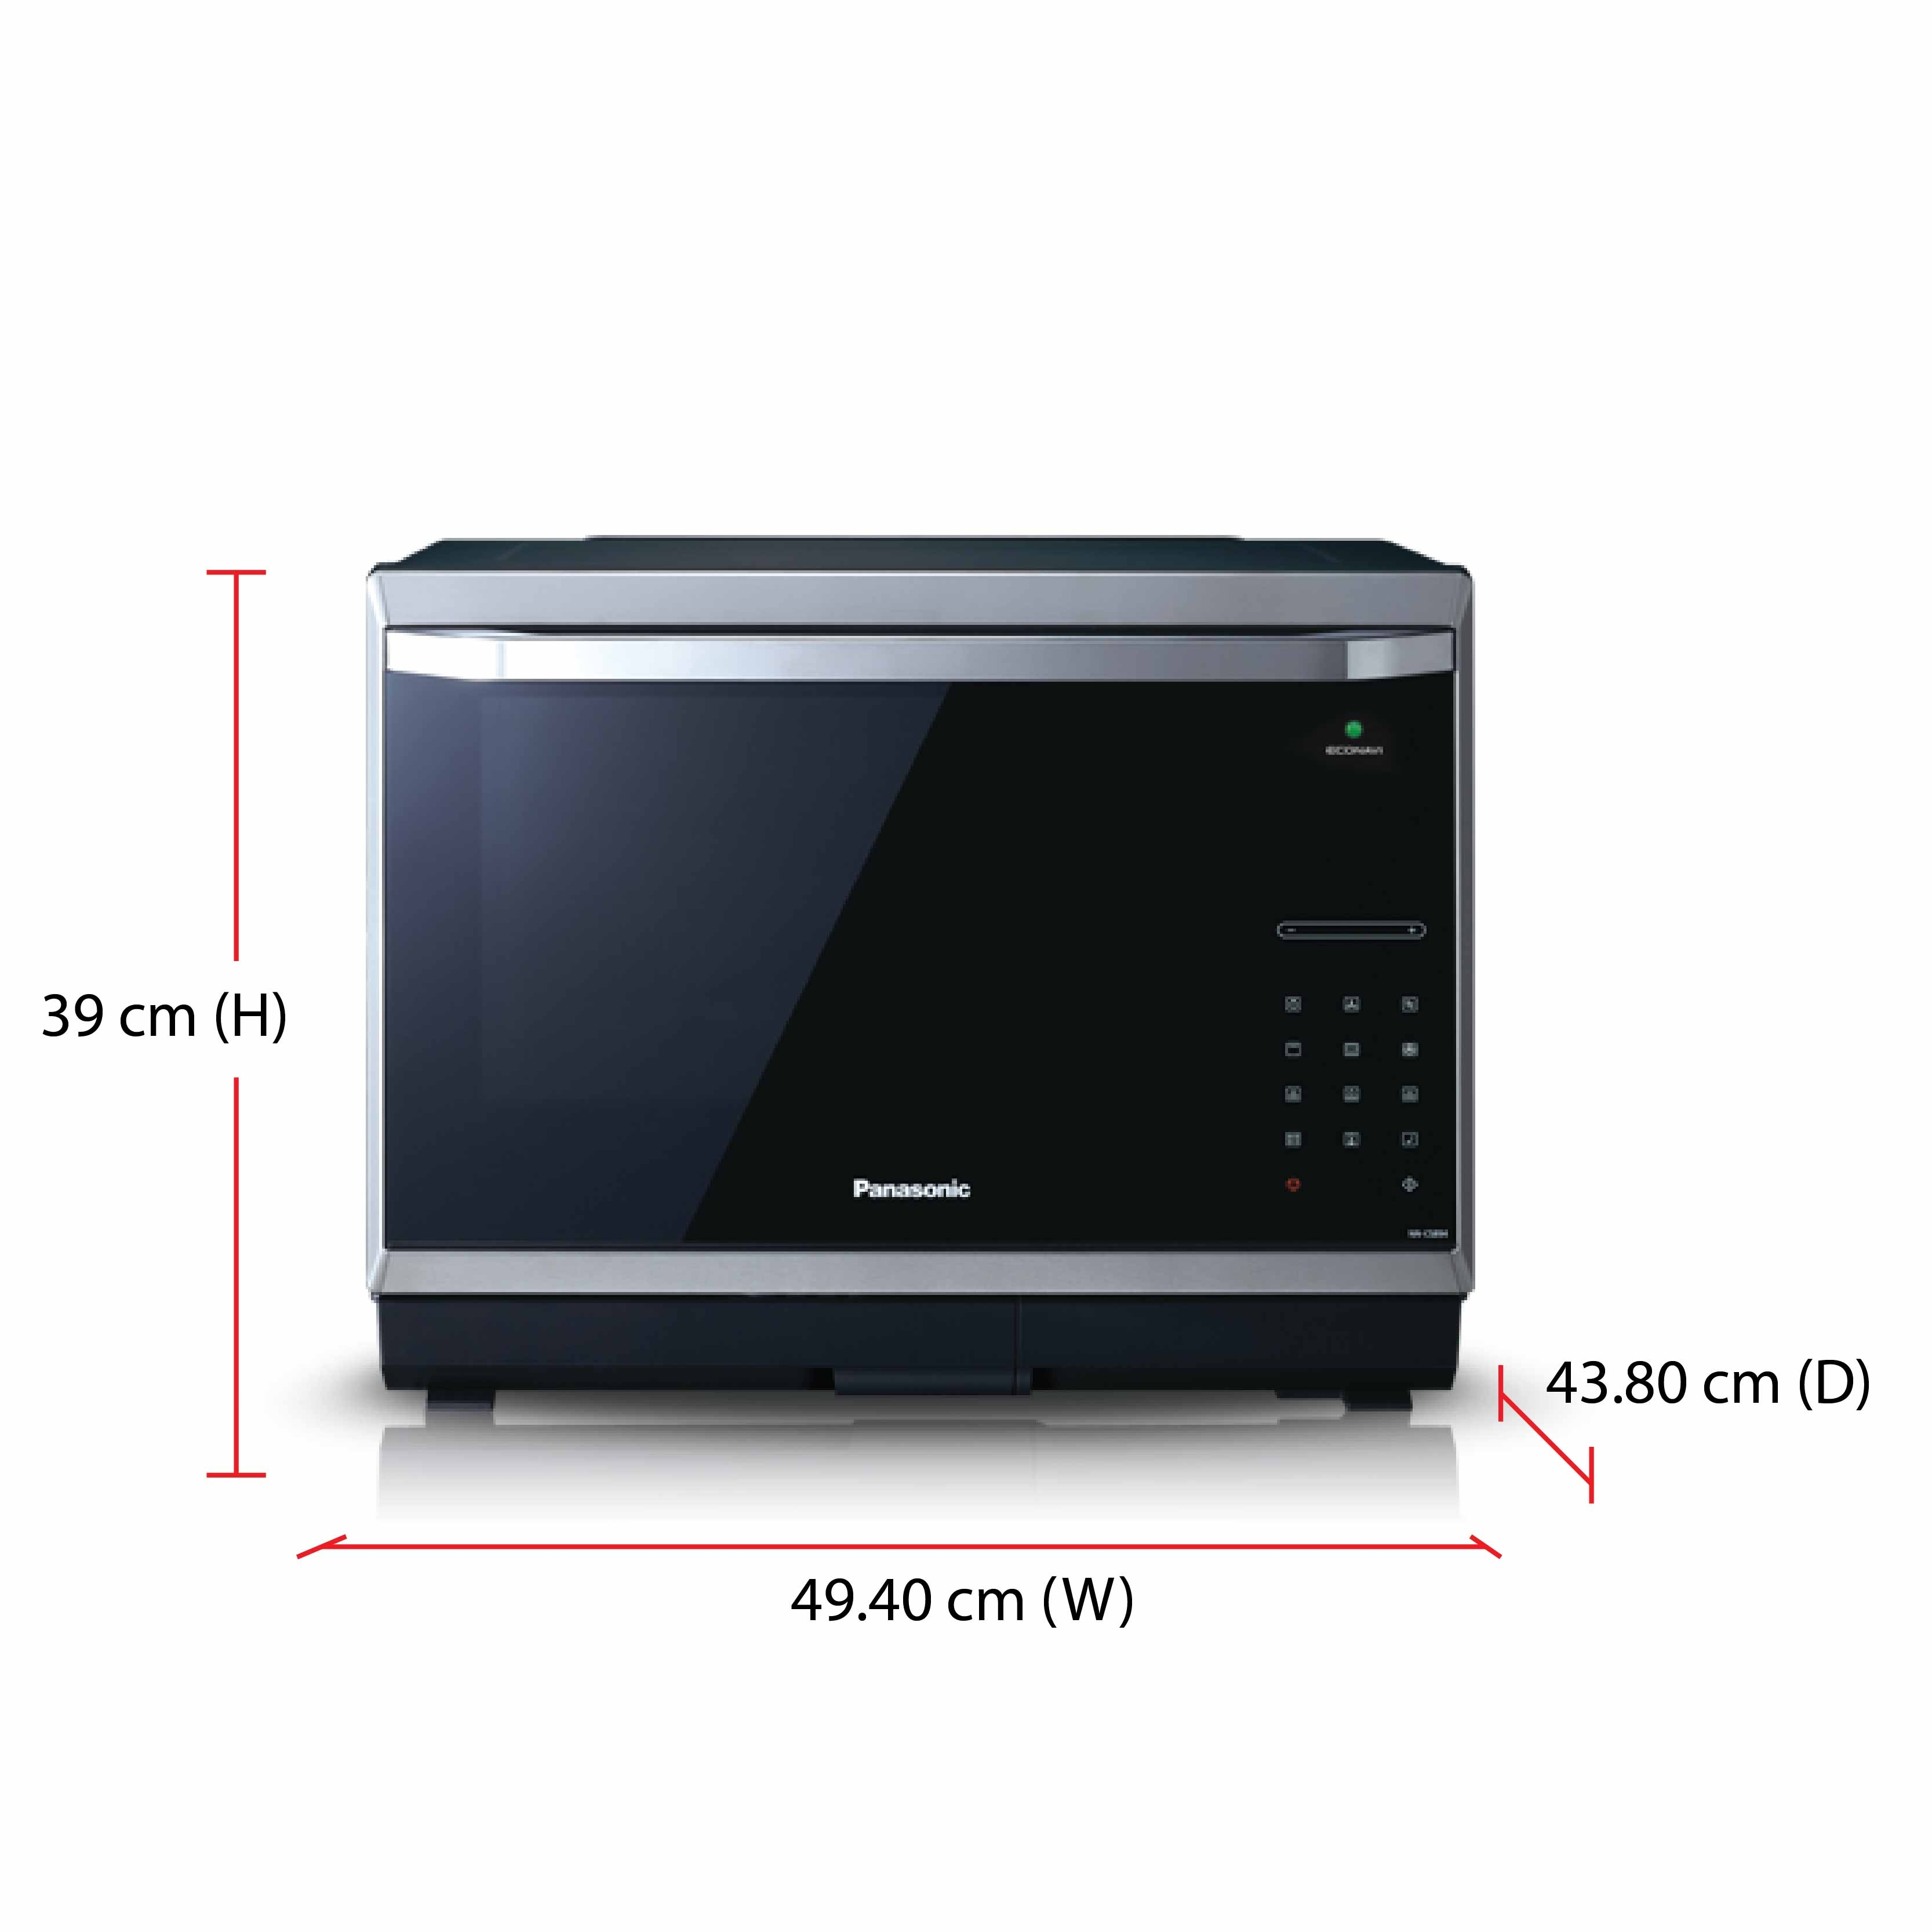 Panasonic Convection Microwave Microwave Oven Inverter Vs Convection Bestmicrowave